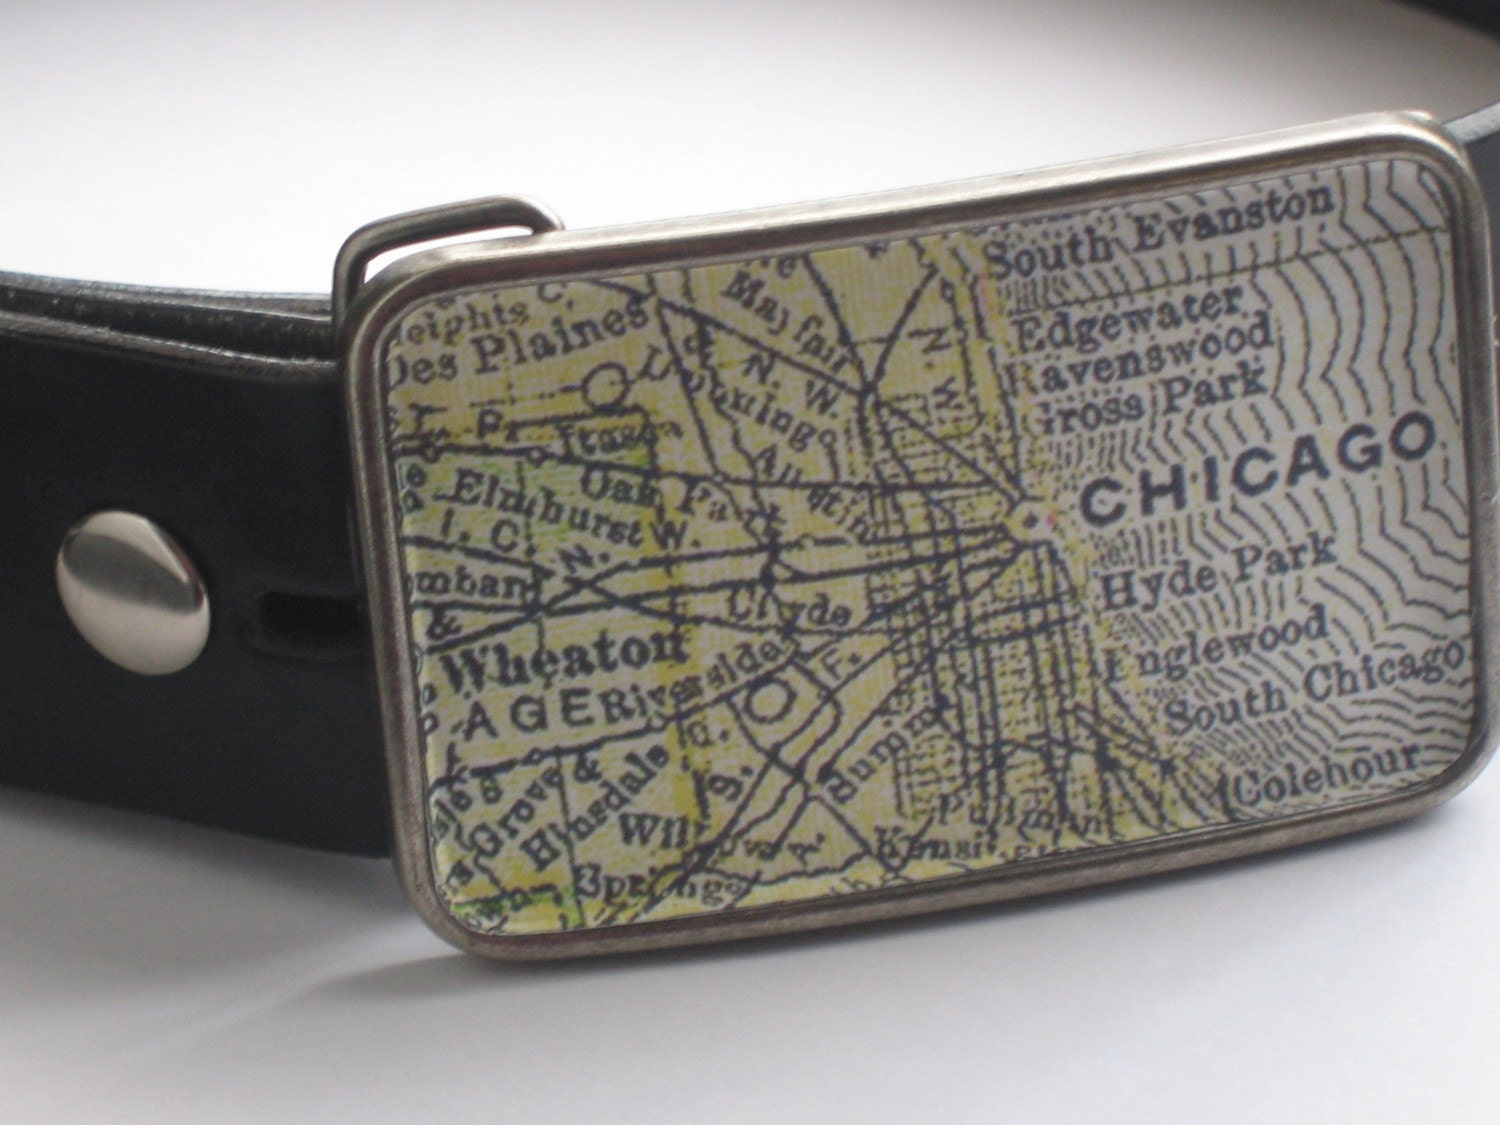 Chicago Vintage Map Belt Buckle - GIFT WRAP INCLUDED - Travels - Vintage Finish hyde park engelwood gross park ravenswood edgewater south chicago